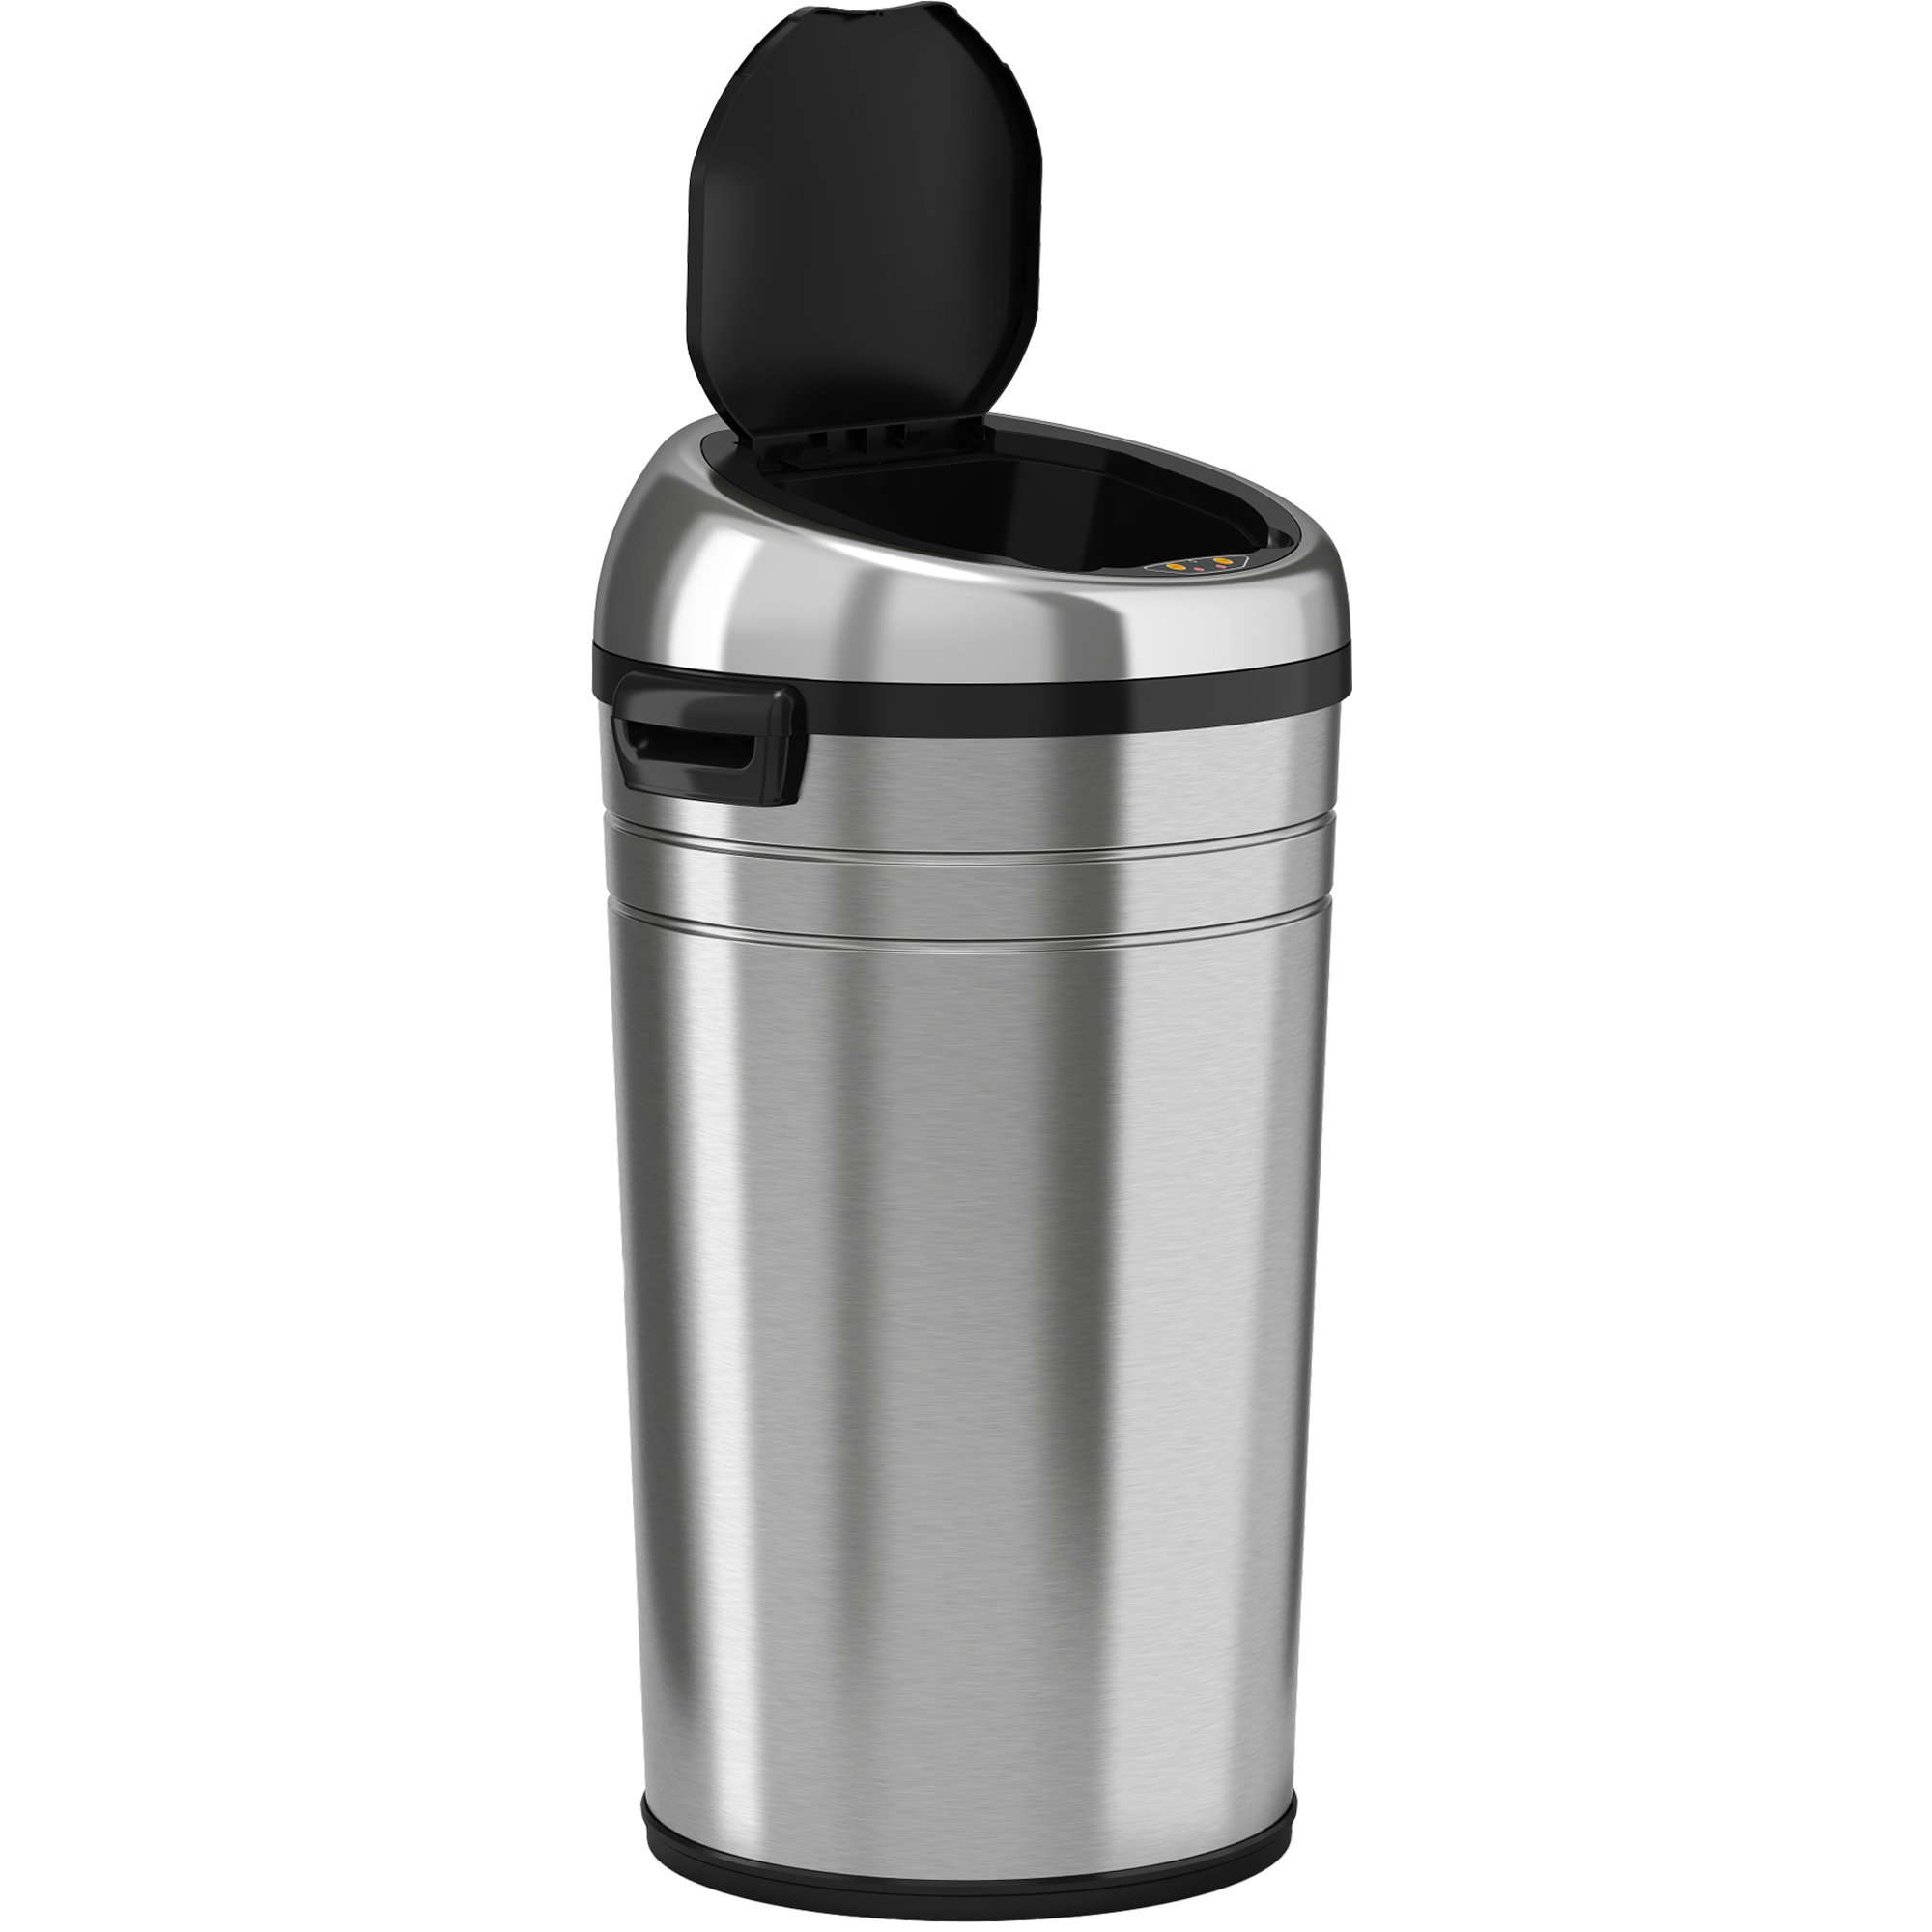 iTouchless Commercial Size Automatic Touchless Sensor Trash Can - Stainless Steel – 23 Gallon / 87 Liter – Round Shape